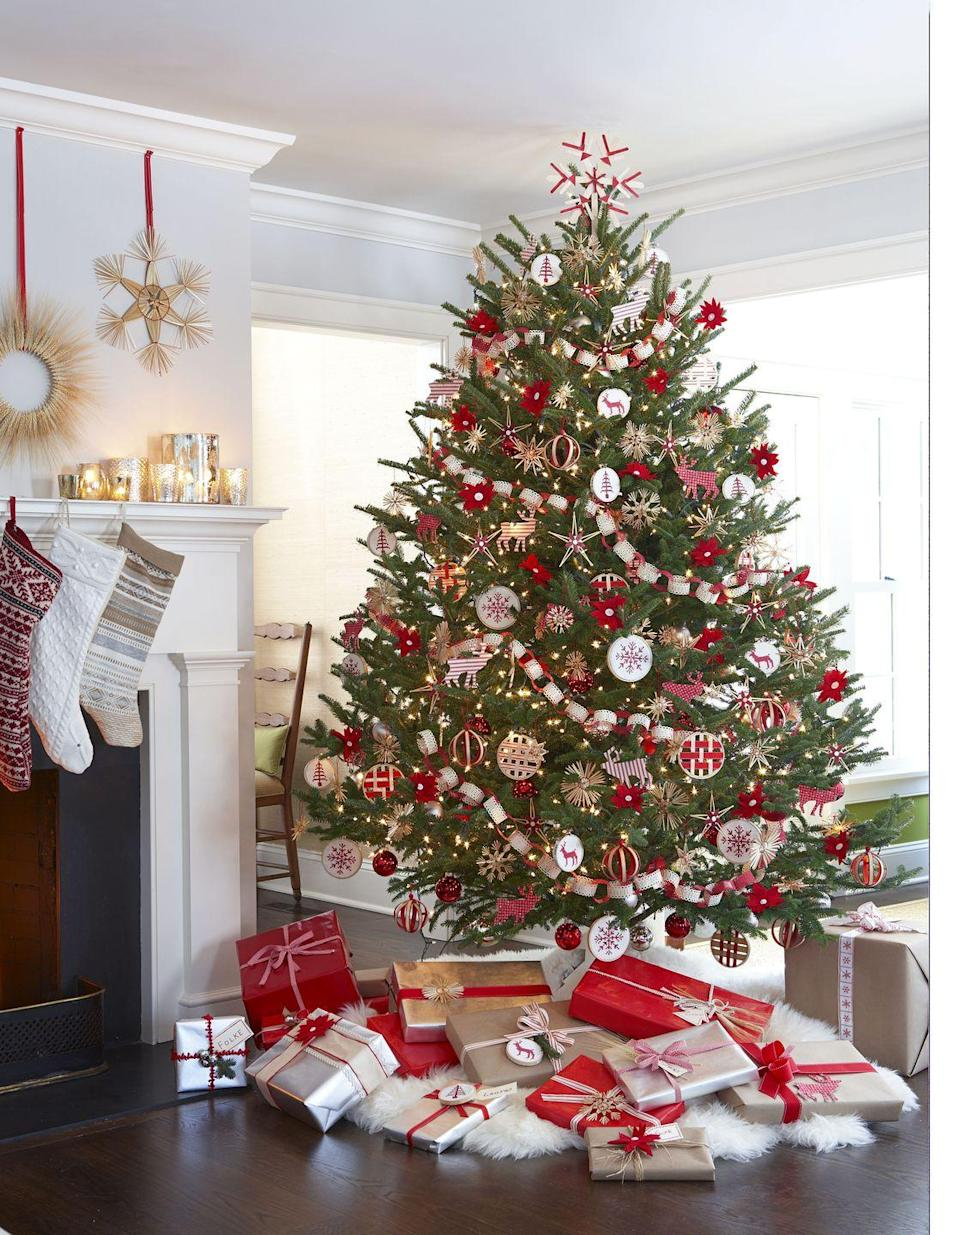 """<p>Embrace the hygge lifestyle with a Scandinavian-styled tree. Better yet, hit up your favorite Swedish retailer (<a href=""""https://www.goodhousekeeping.com/home/craft-ideas/g2941/best-ikea-hacks/"""" rel=""""nofollow noopener"""" target=""""_blank"""" data-ylk=""""slk:IKEA"""" class=""""link rapid-noclick-resp"""">IKEA</a>, of course!) for sheepskin rugs instead of a tree skirt.  </p>"""